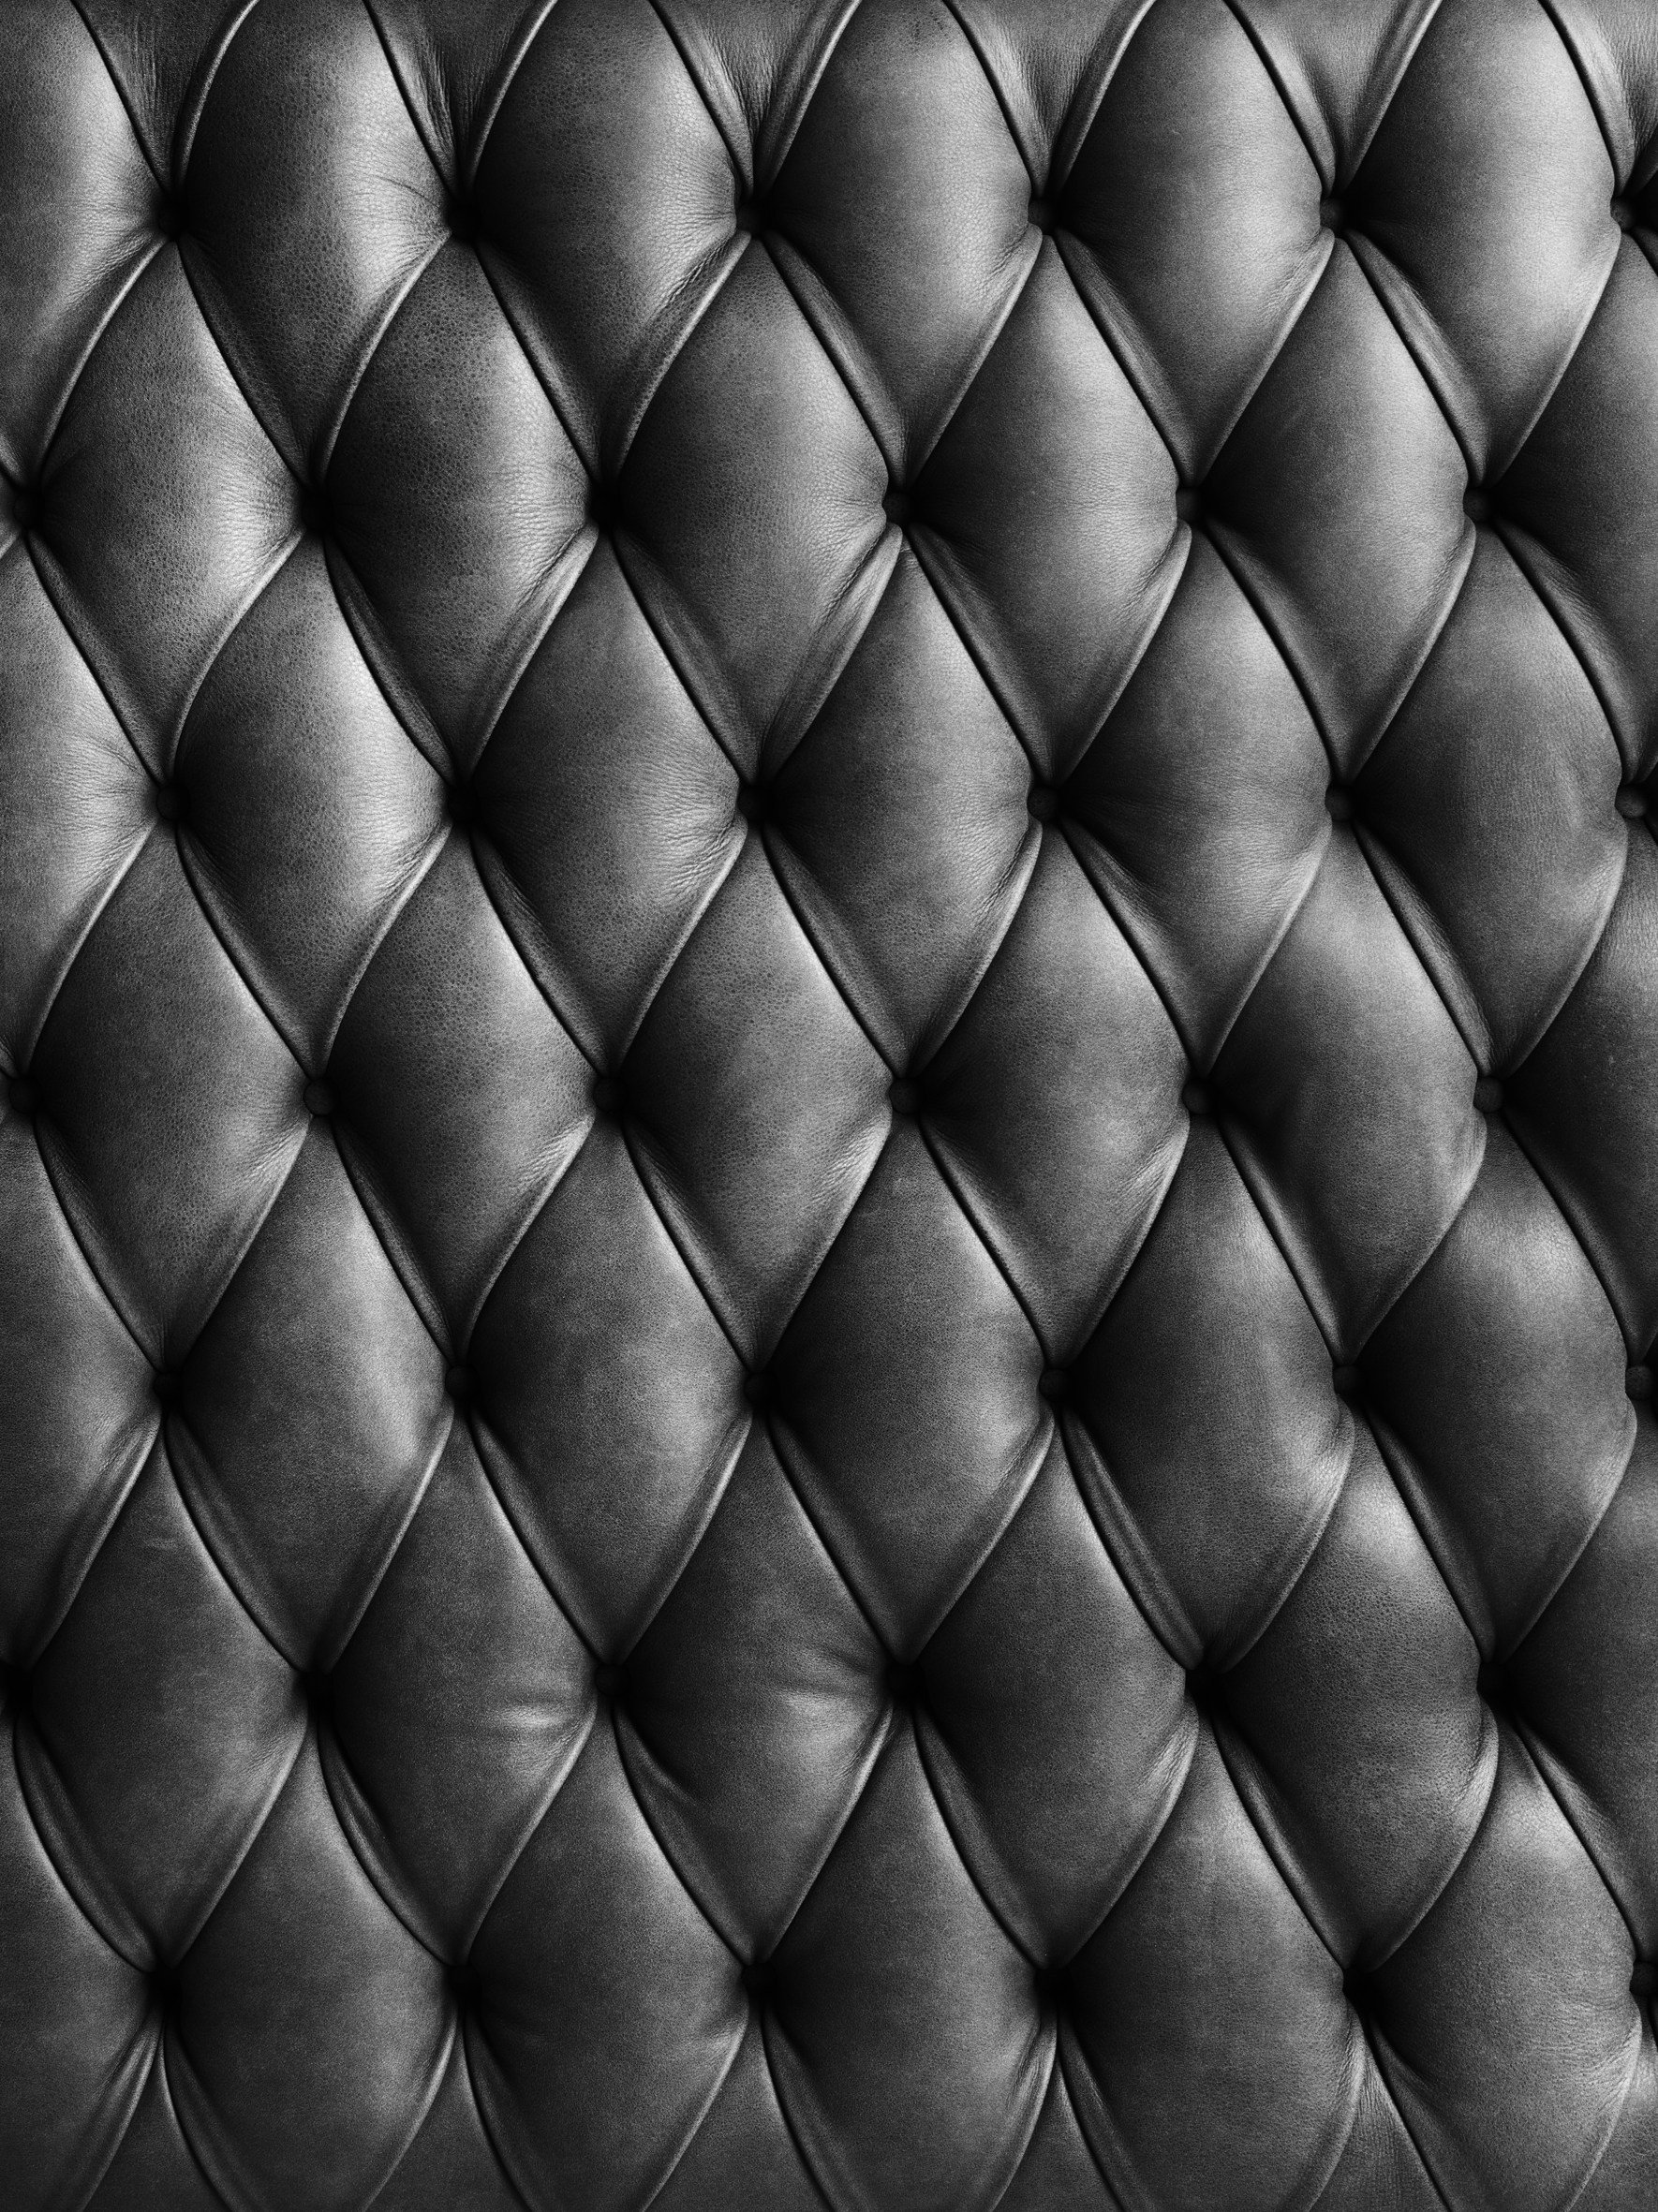 Black Tufted Fabric Texture Picture 28 Images Leather Upholstery Sofa Texture Tufted